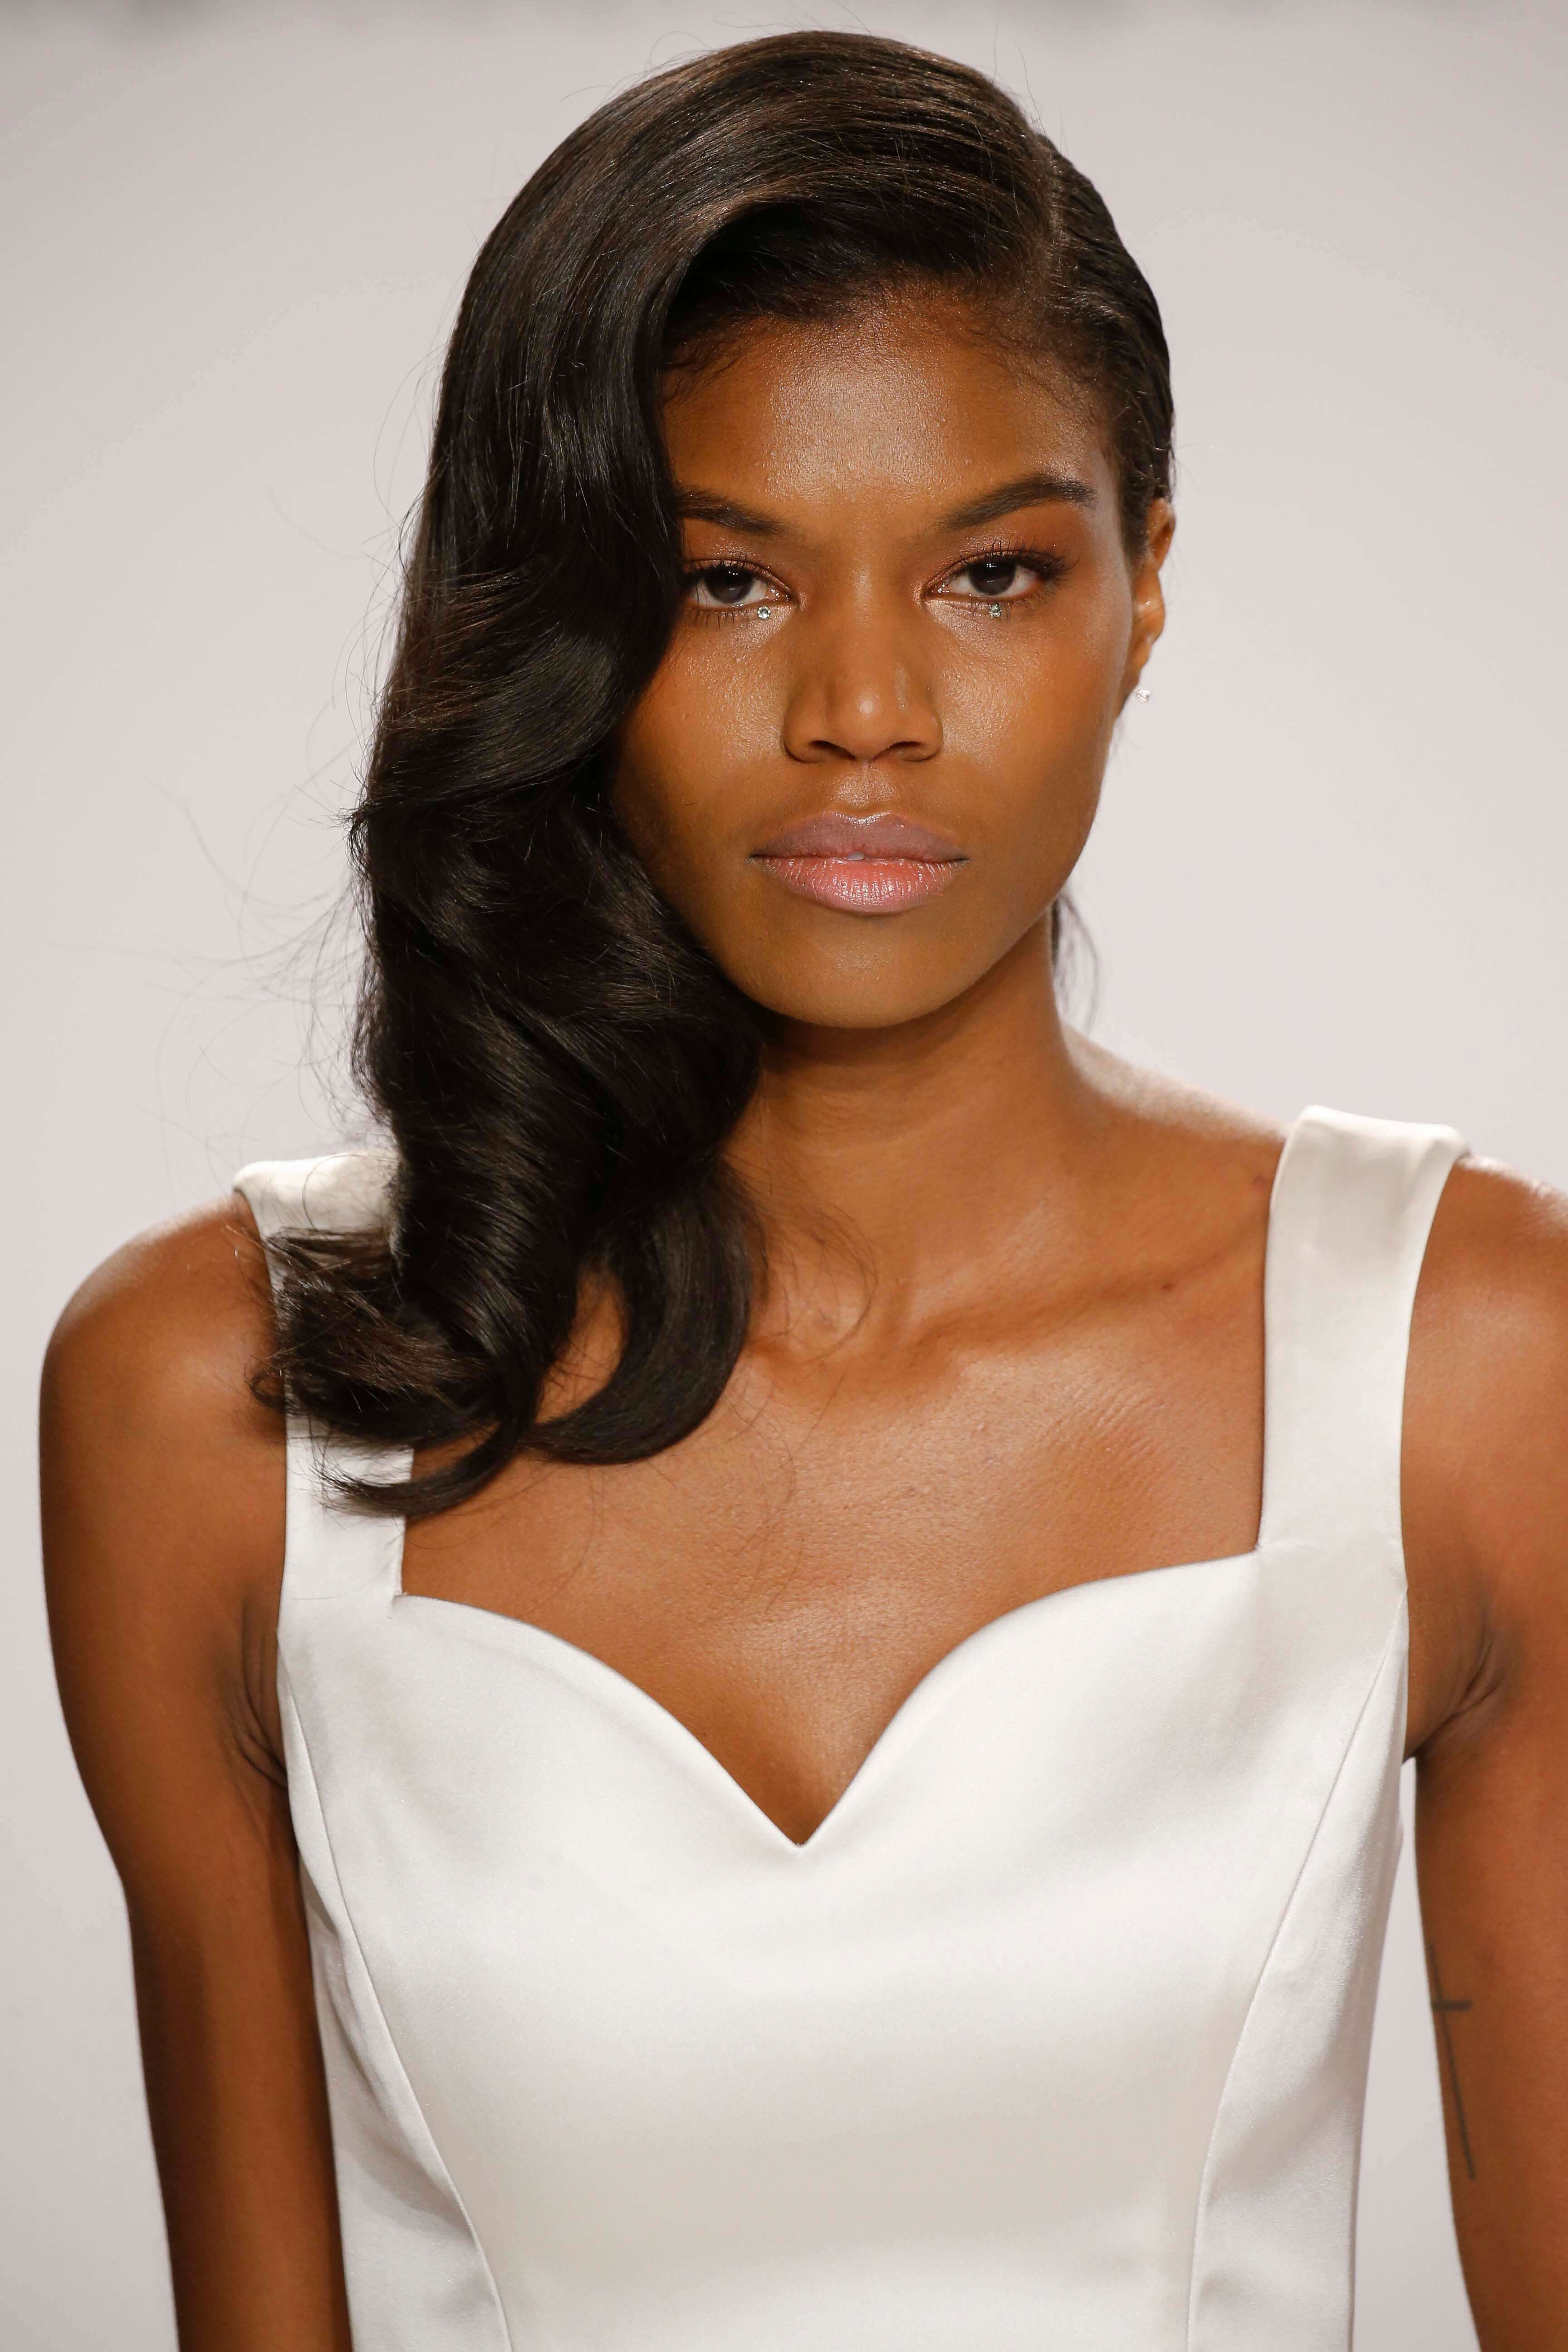 Wedding Black hairstyles to the side model advise to wear for summer in 2019